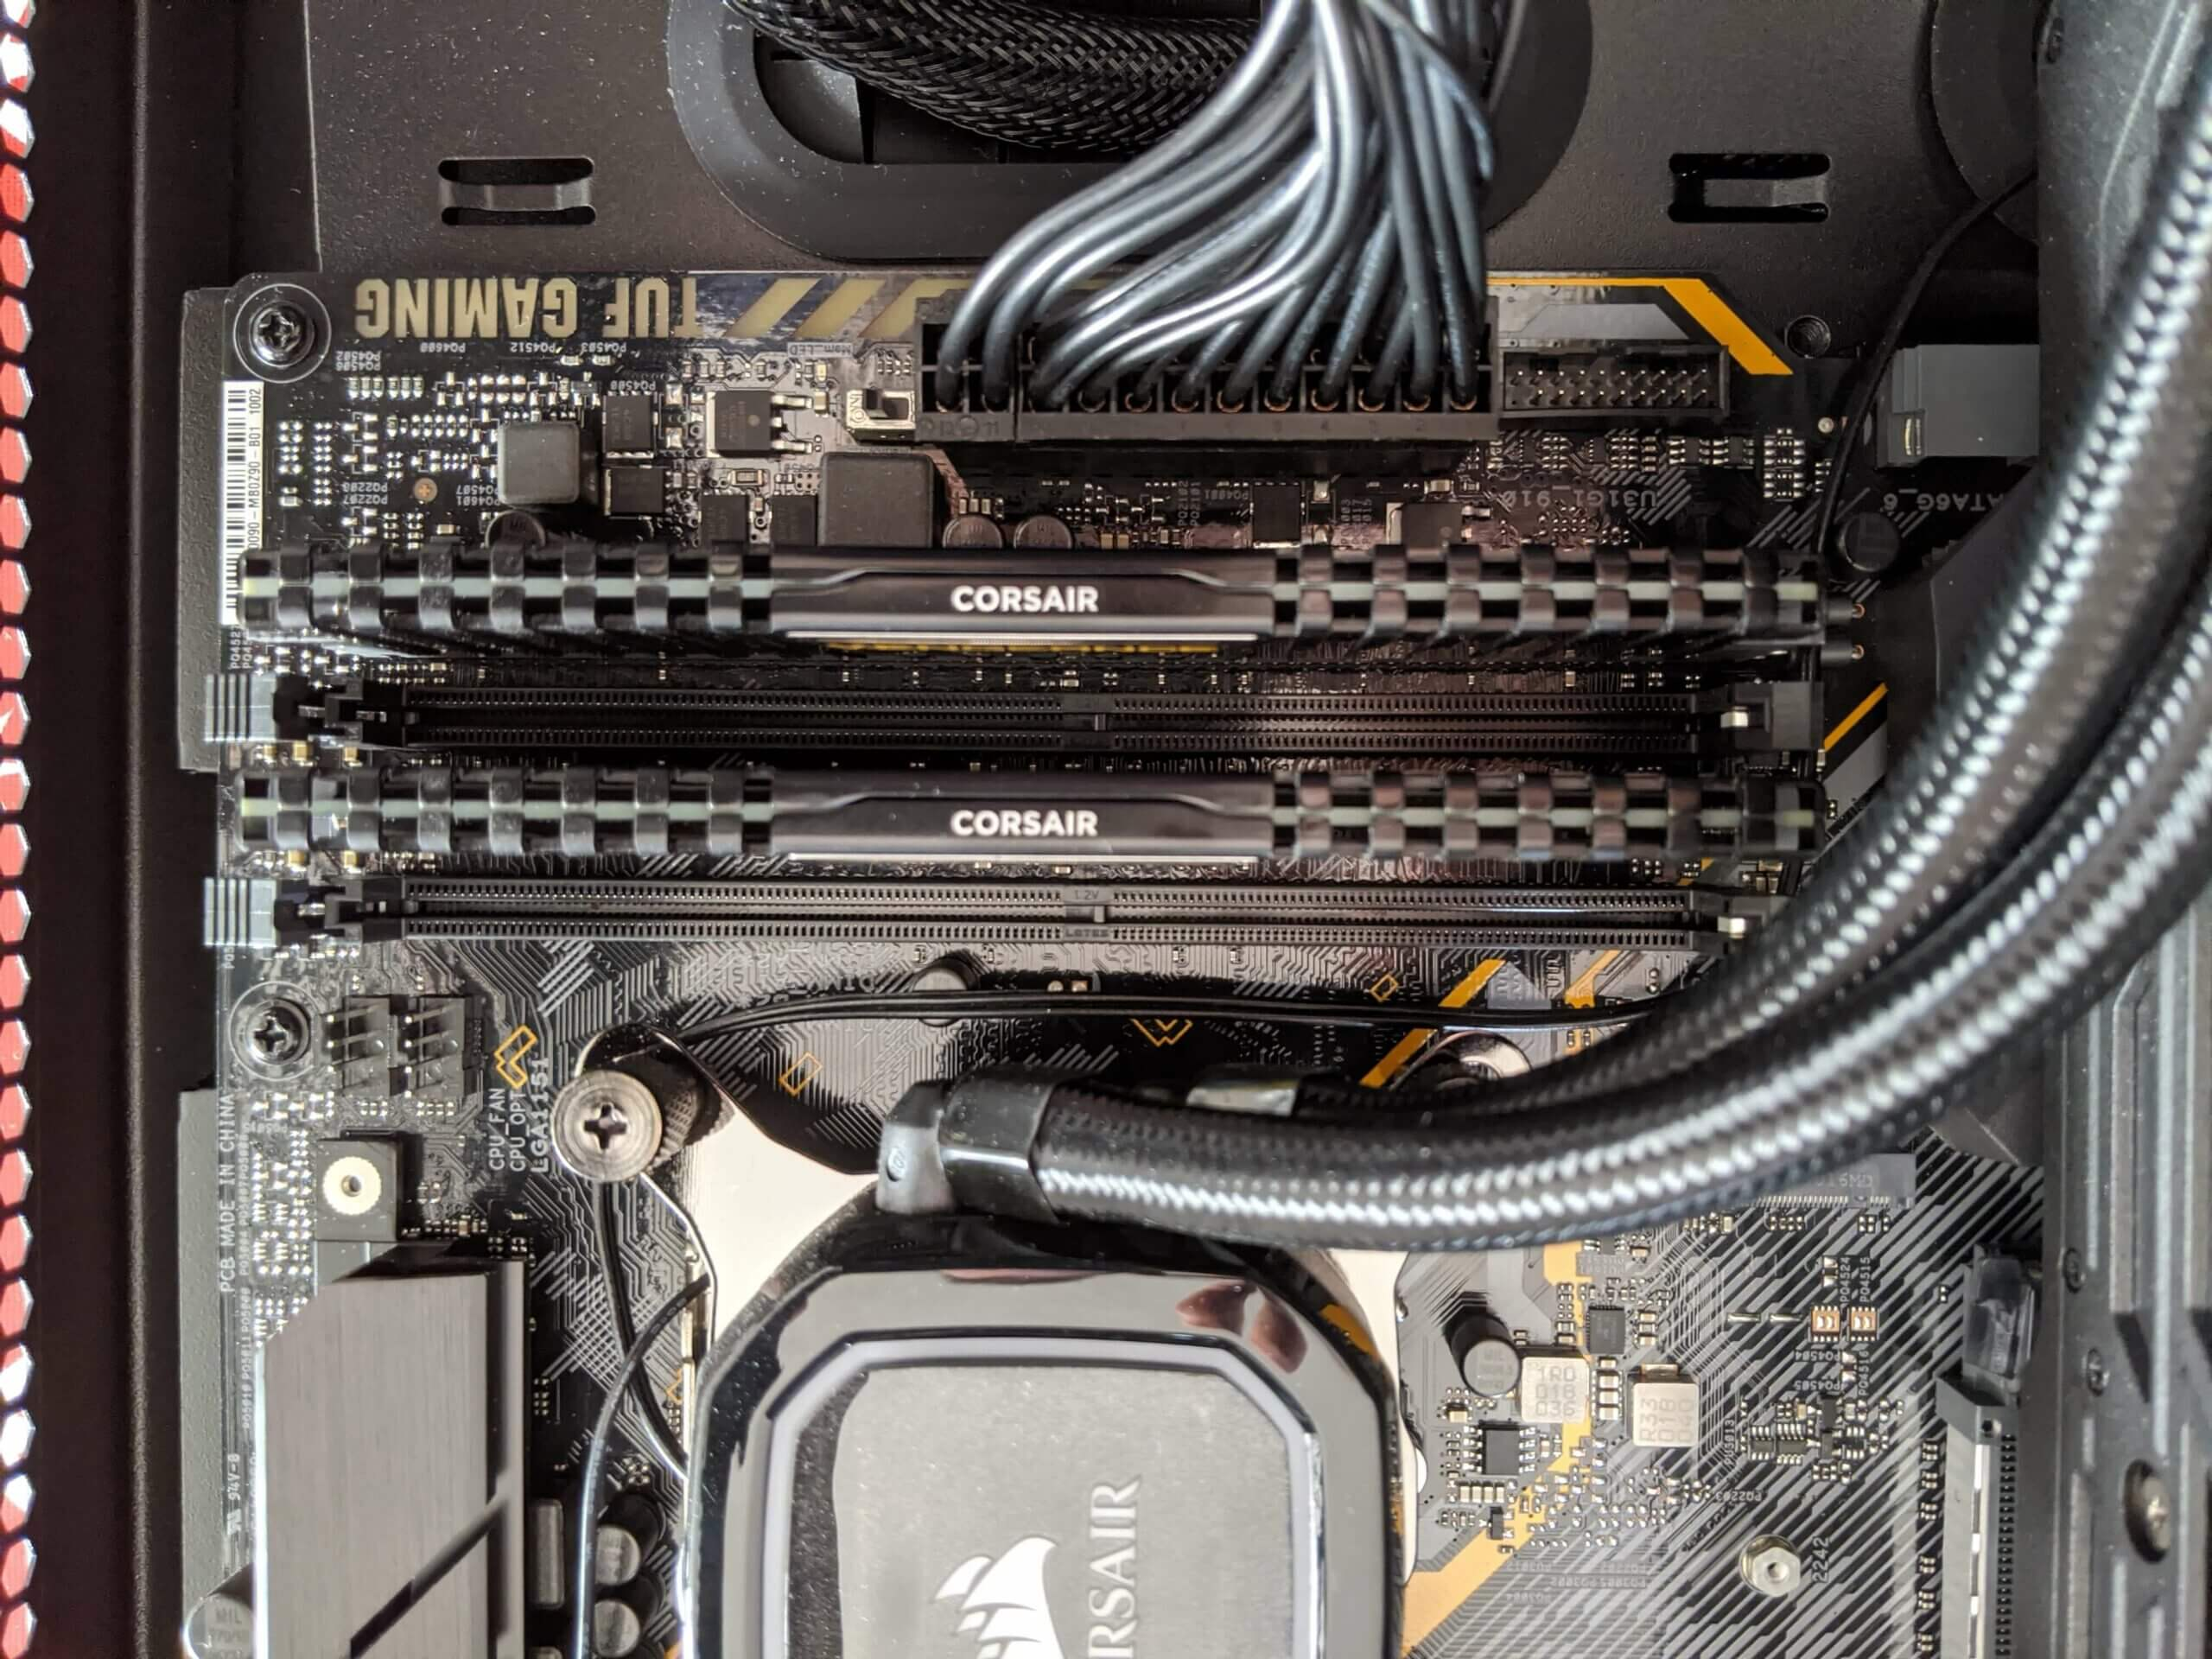 corsair ram on motherboard